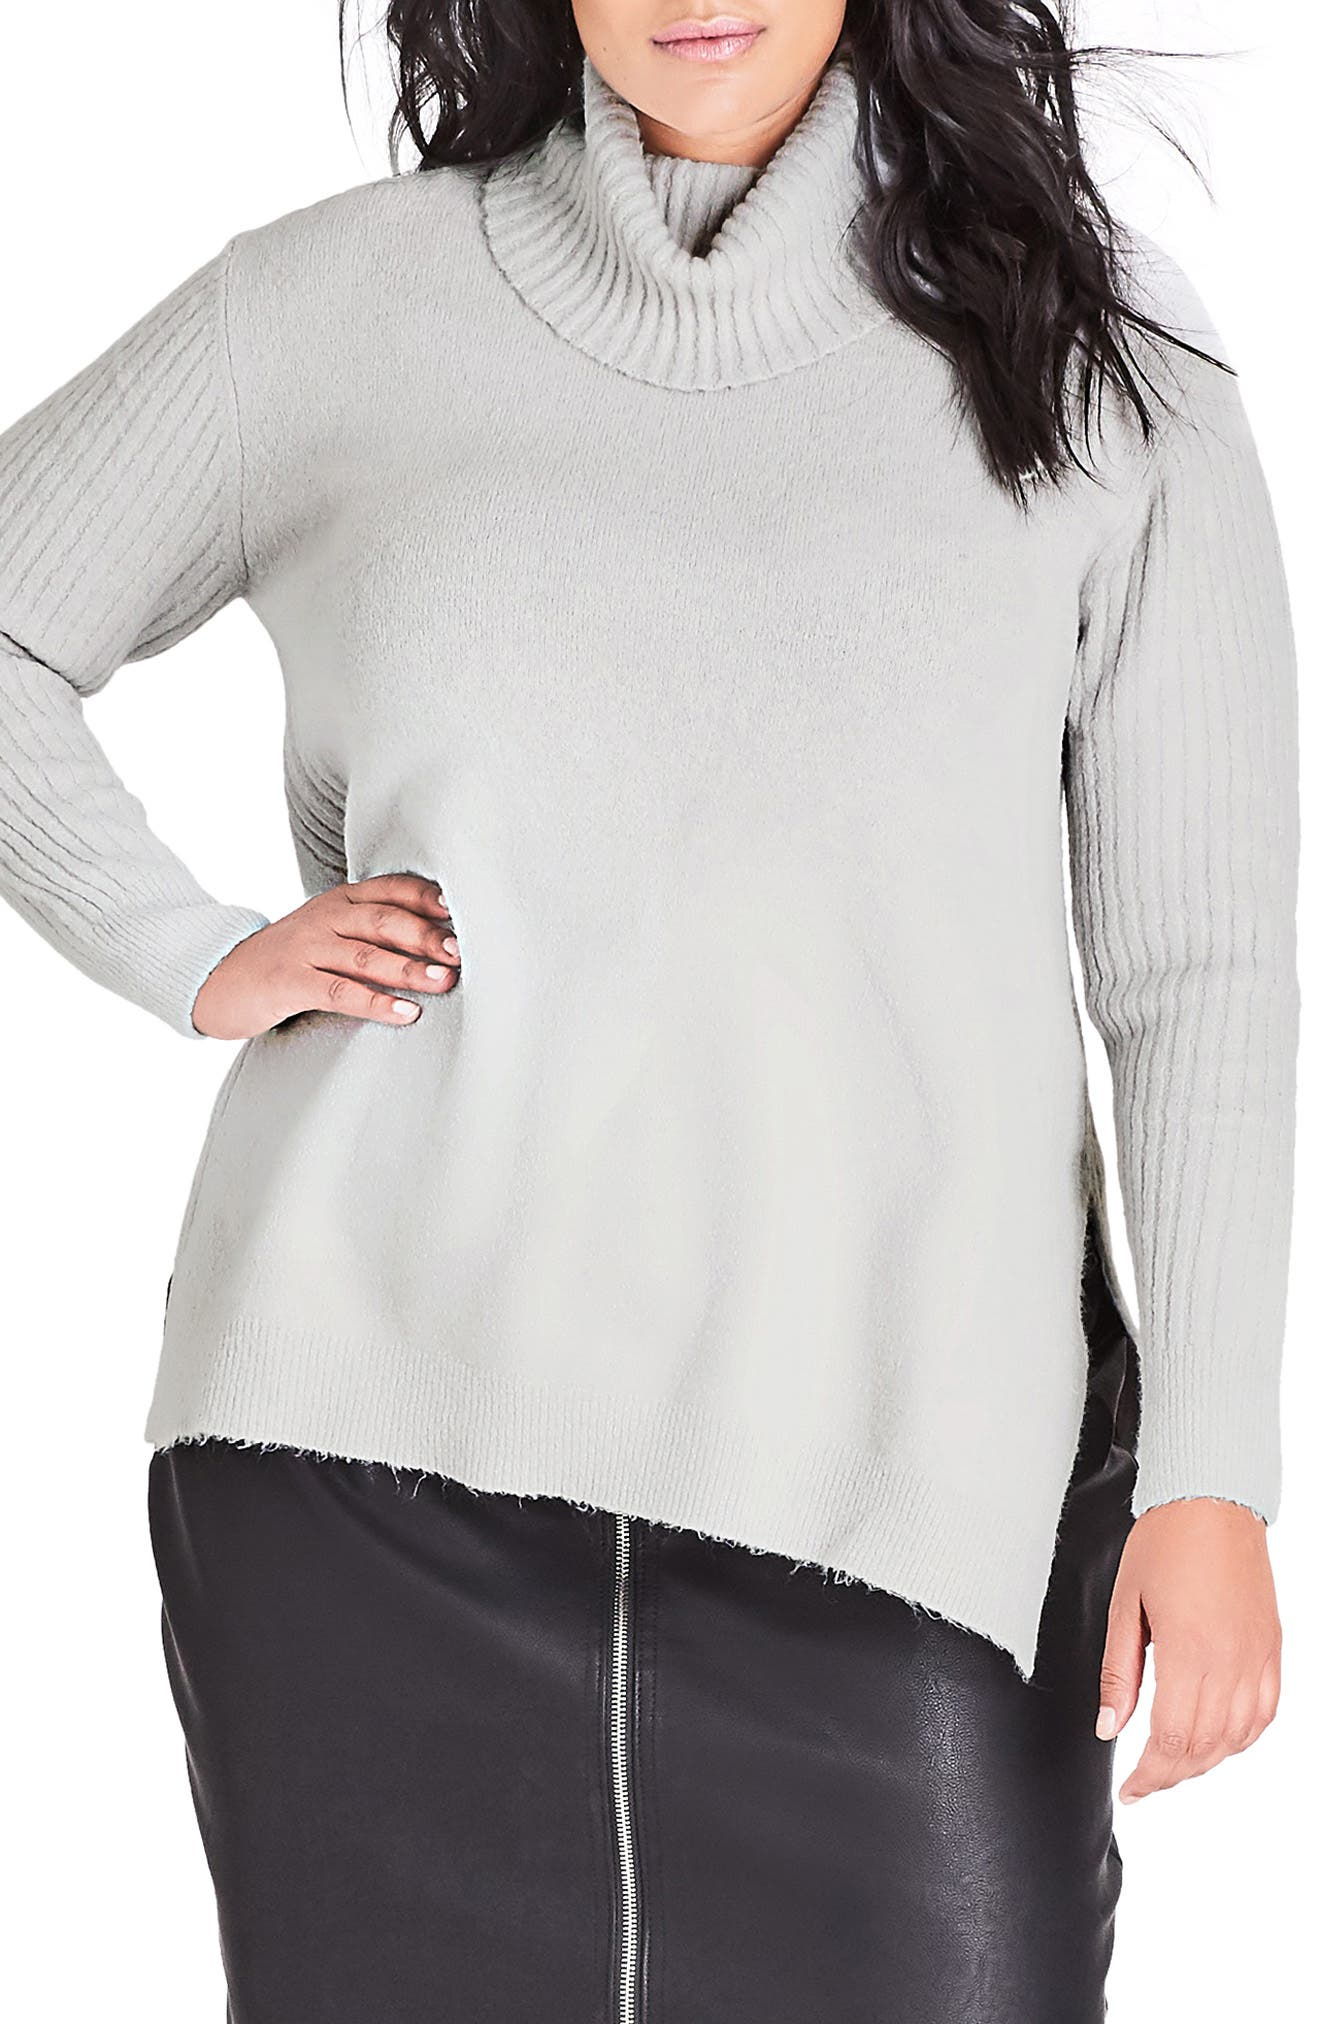 CITY CHIC Turtleneck Sweater, Main, color, SILVER MARLE